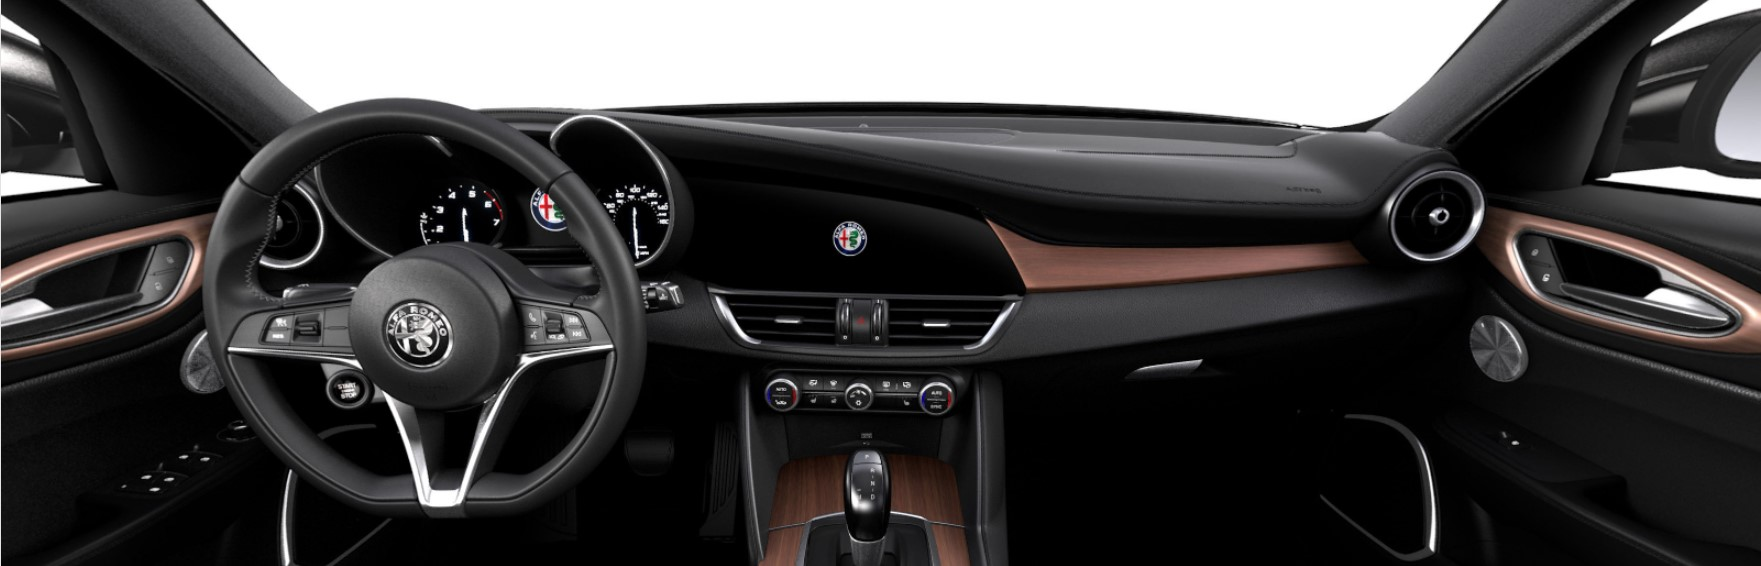 hight resolution of 2017 alfa romeo giulia lusso leather and wood interior